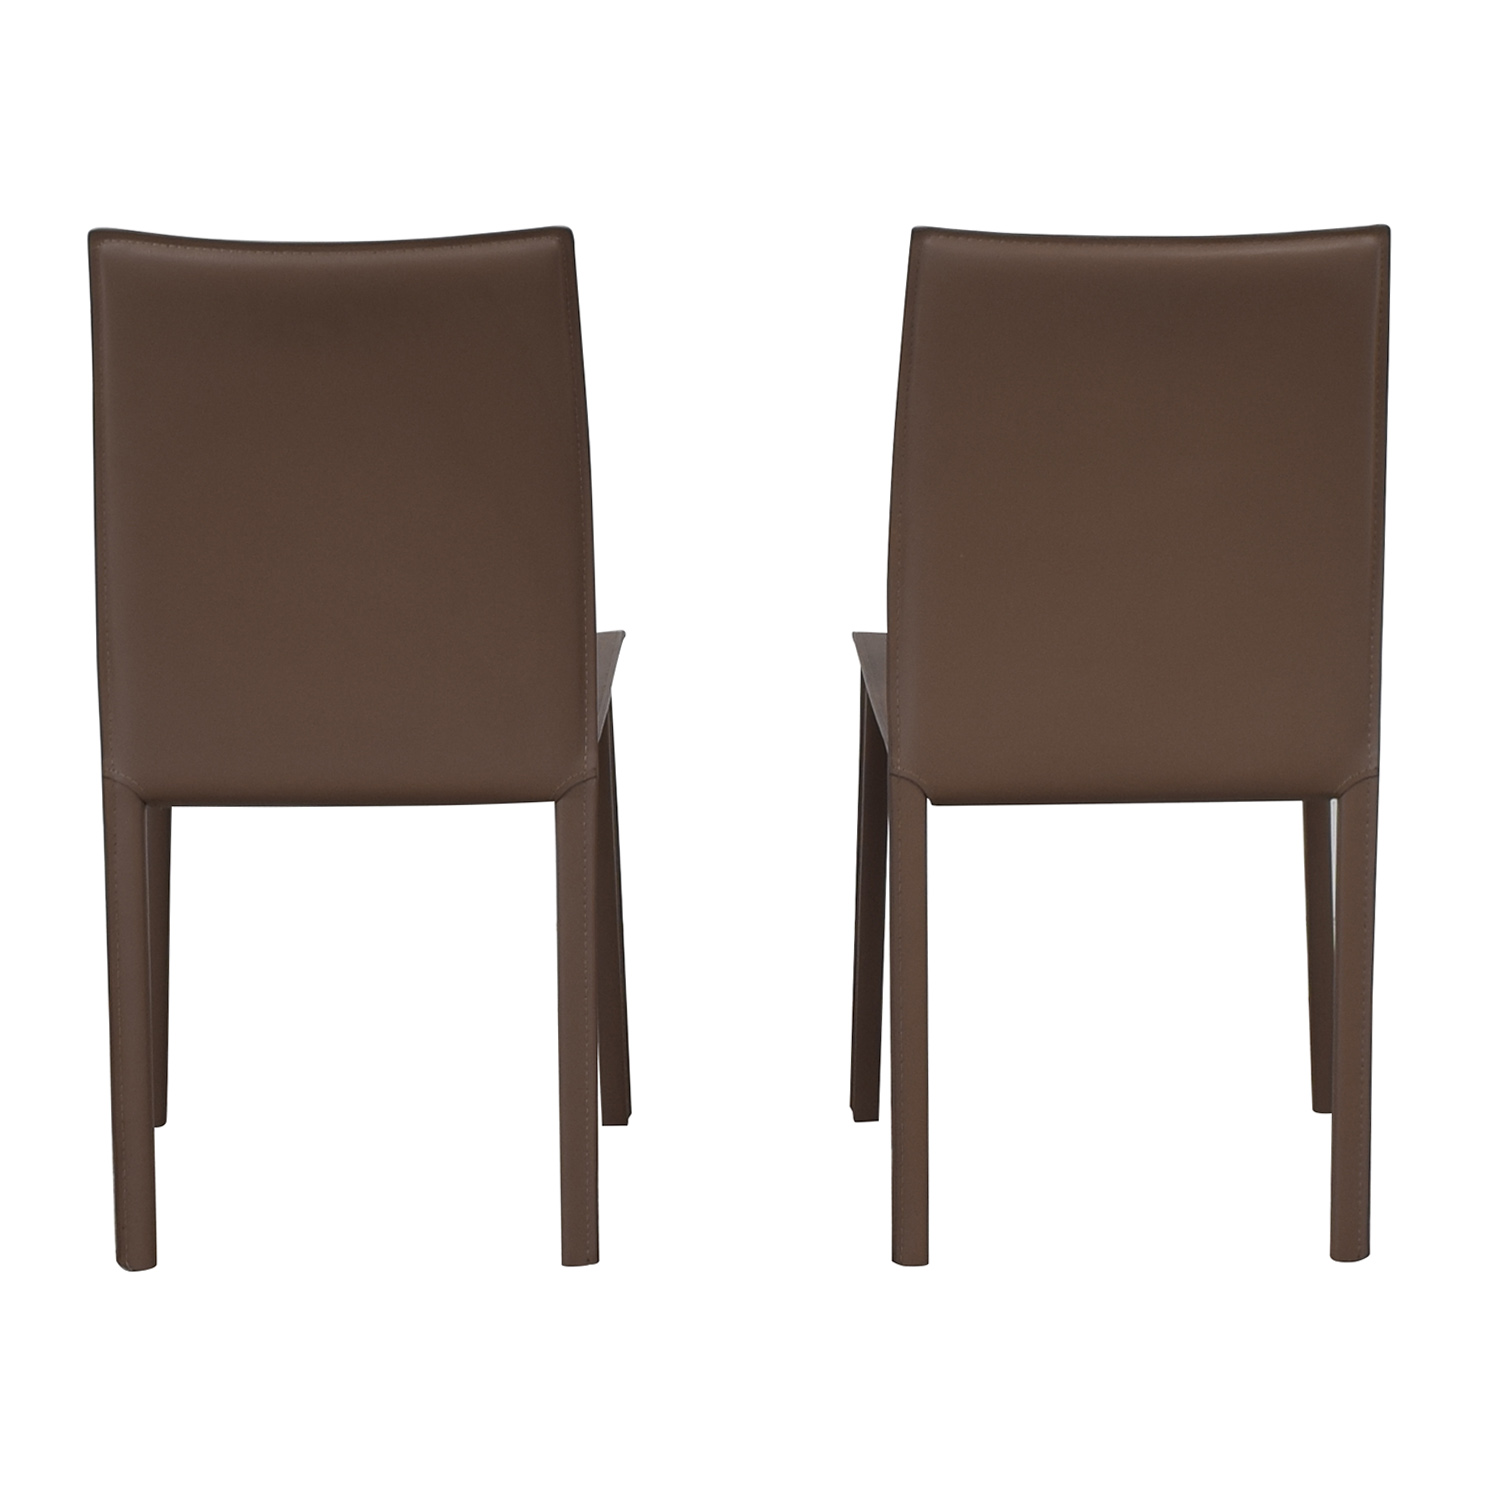 BoConcept BoConcept Dining chairs on sale